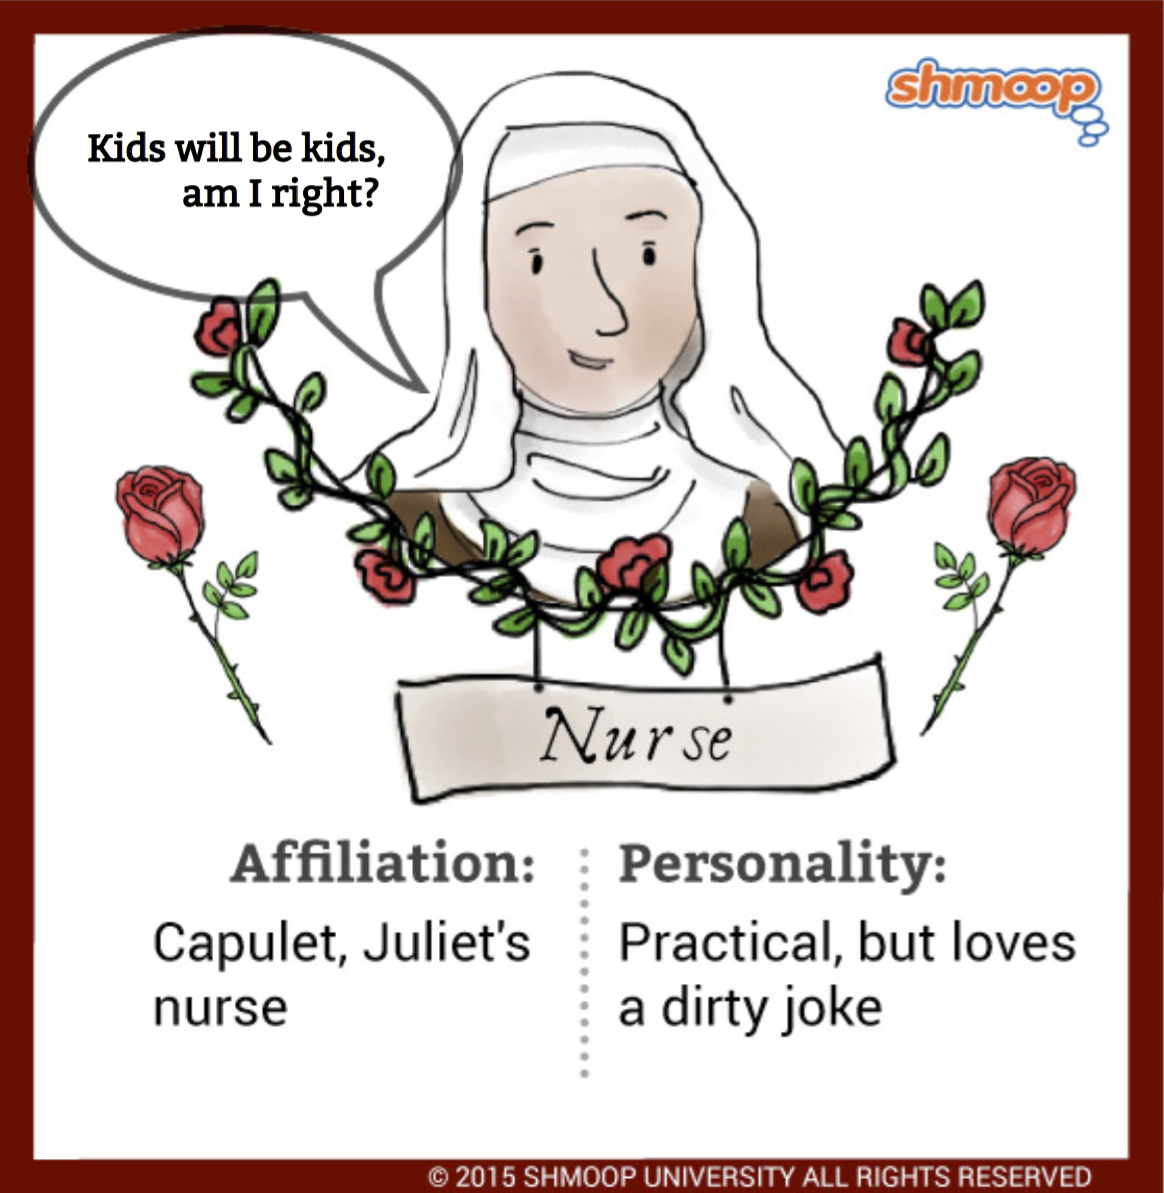 Romeo And Juliet Quotes And Meanings Interesting The Nurse In Romeo And Juliet